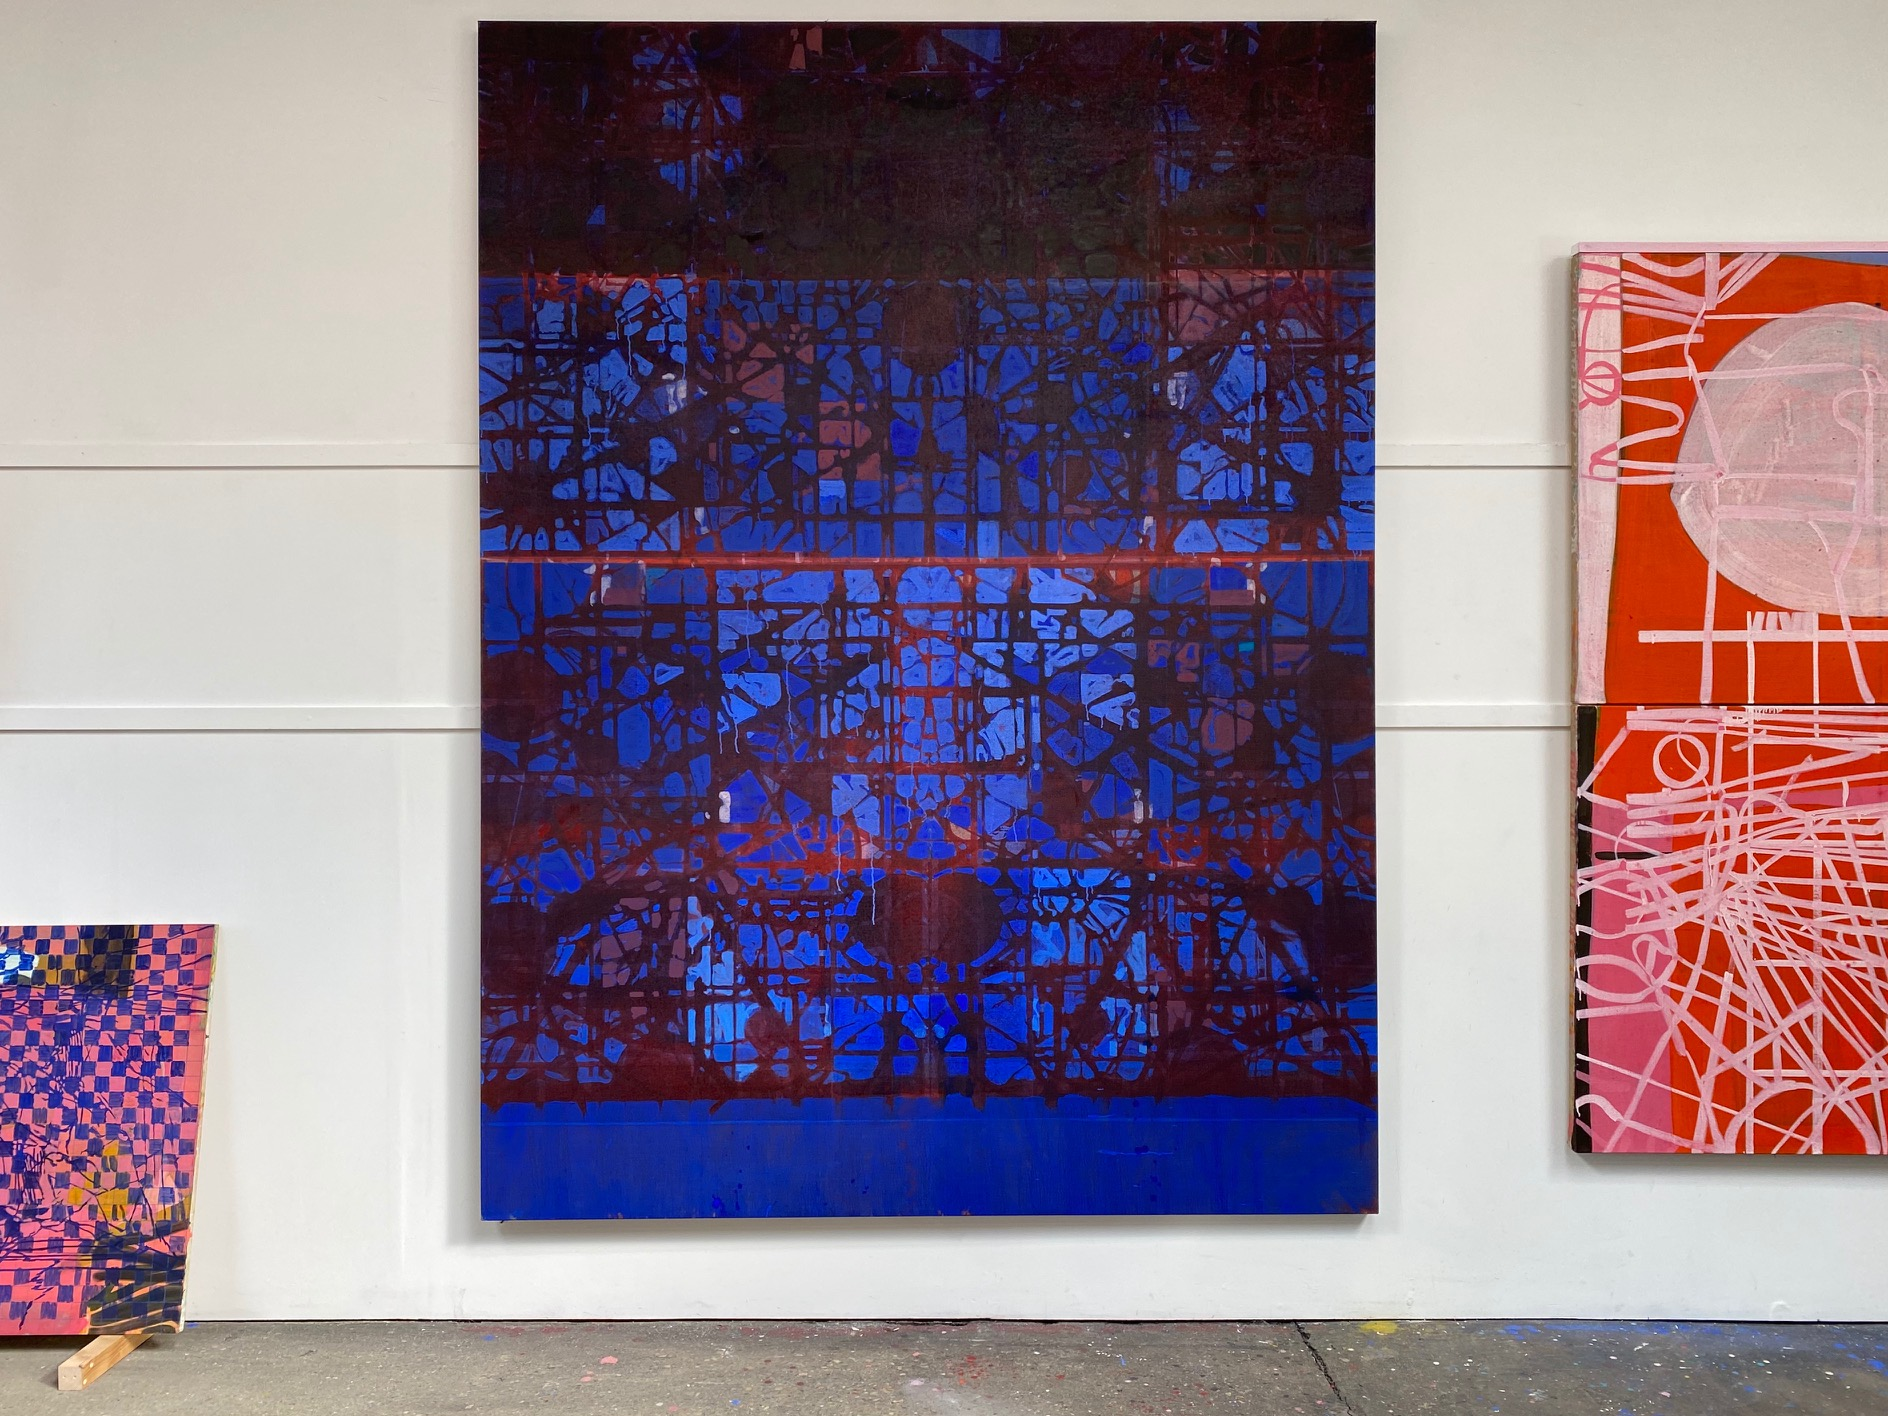 Gate III, 2020 Matthew Burrows Oil on board, 240 x 180 cm